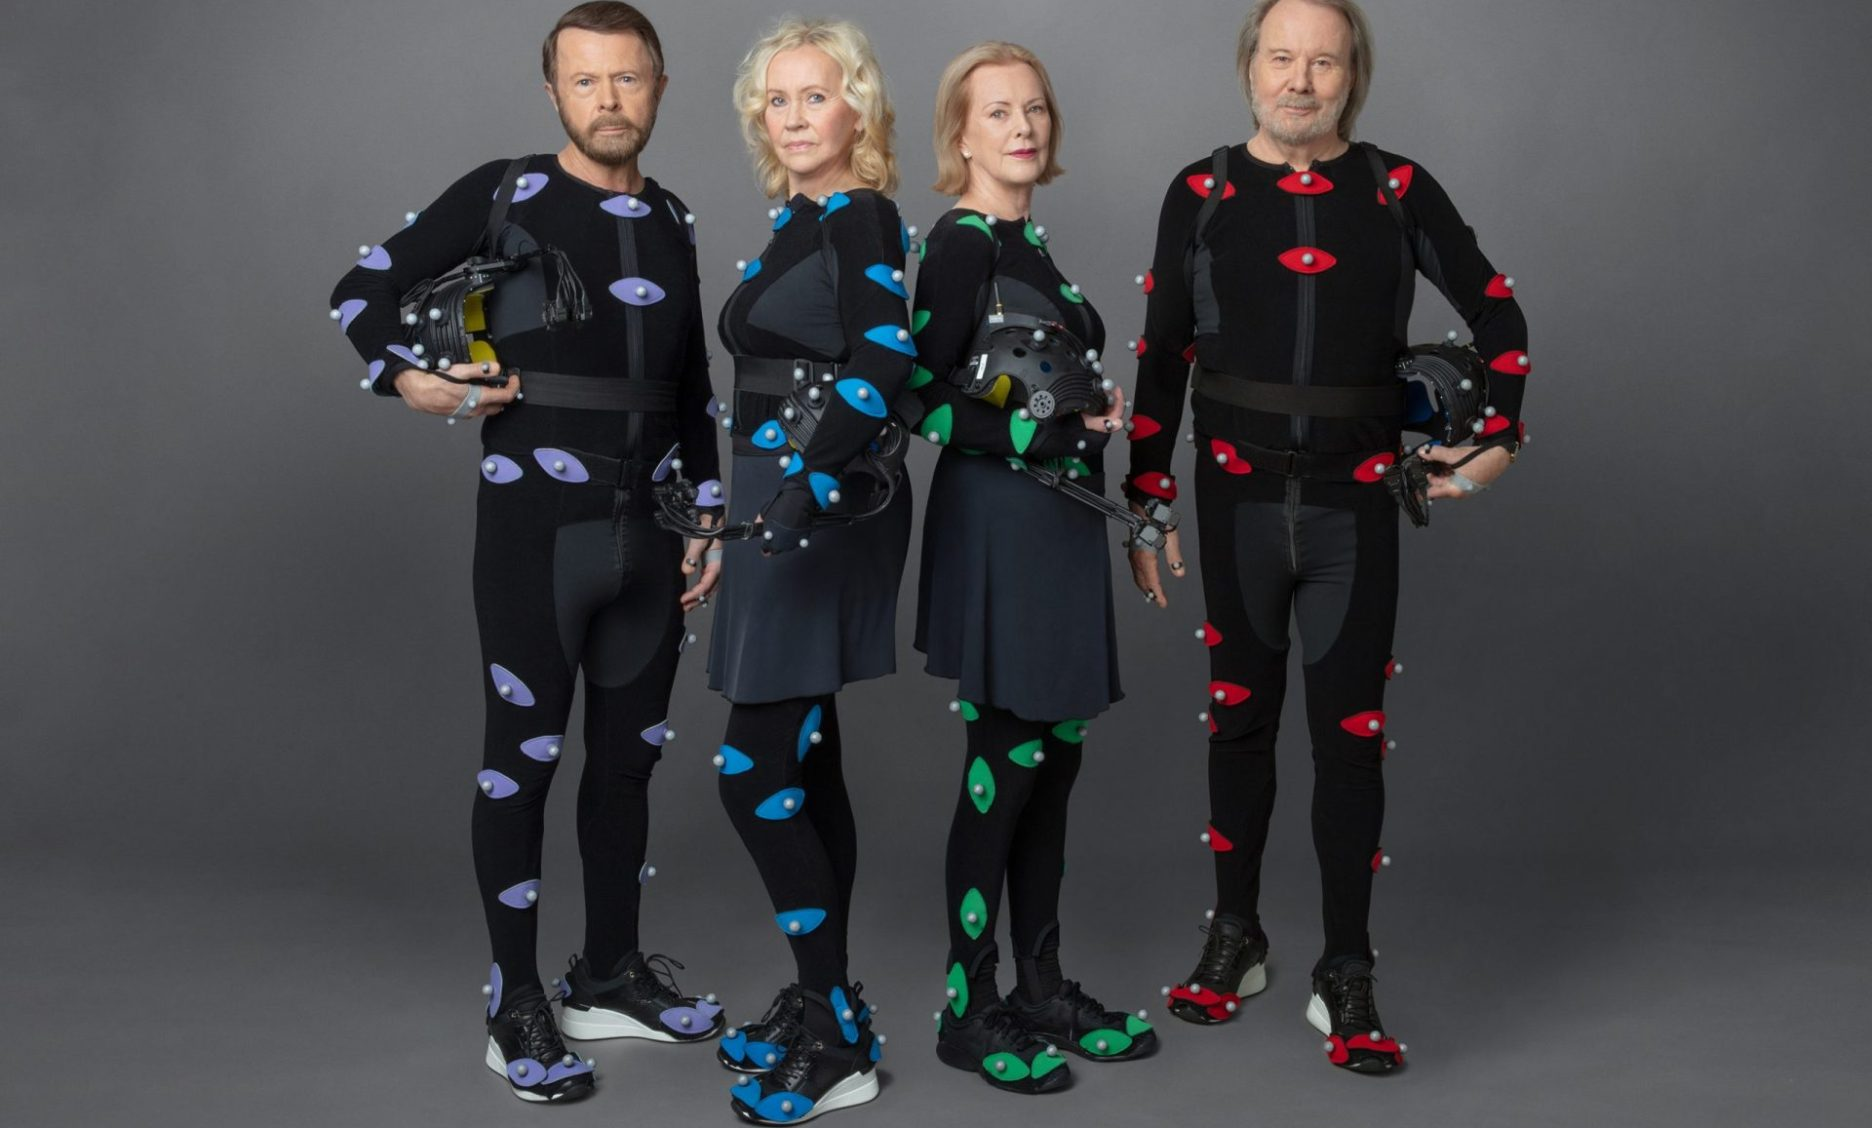 🇸🇪 ABBA score first UK Top 10 single in 40 years with Don